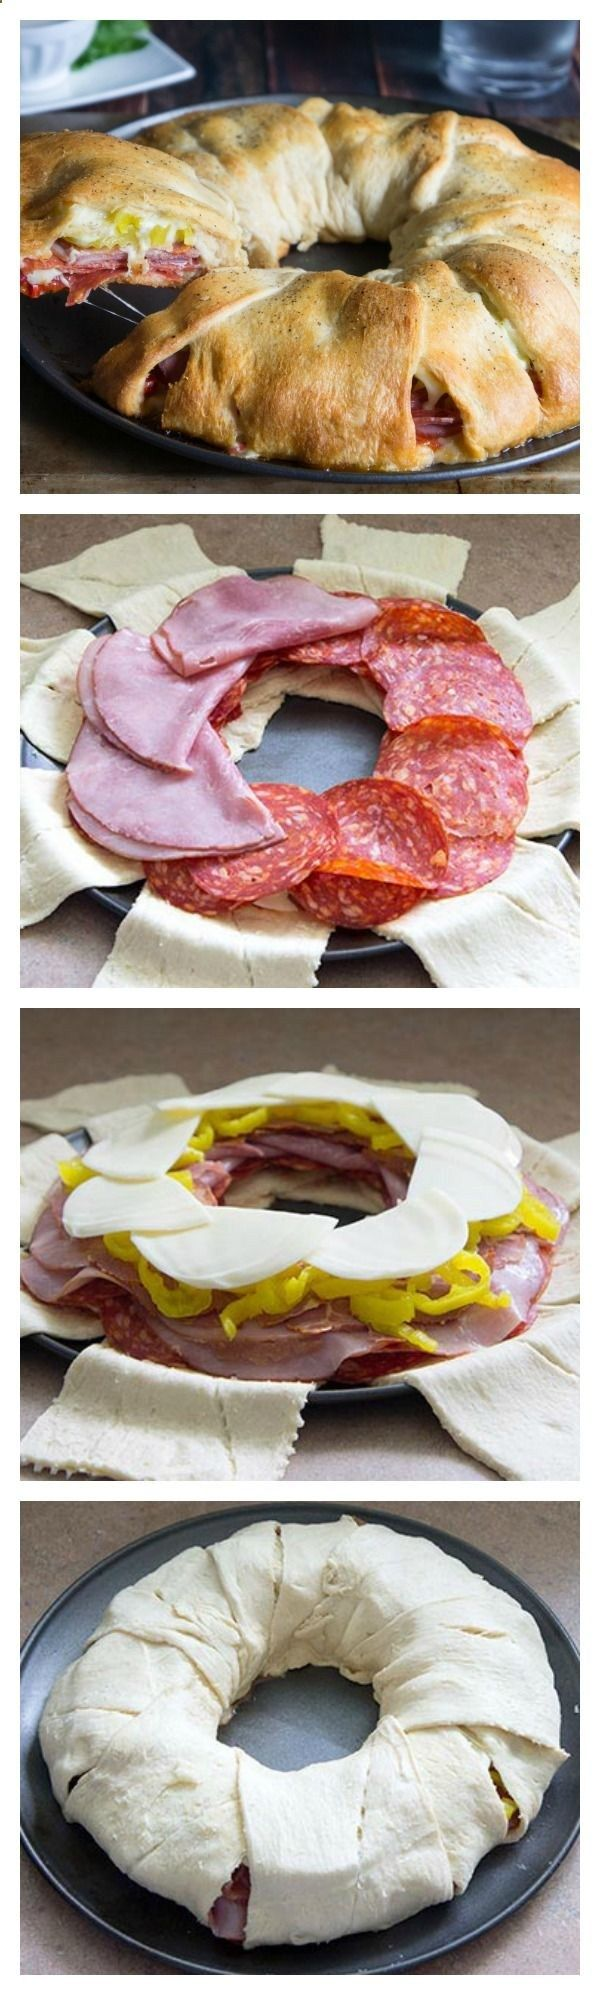 Italian Crescent Ring - a favorite sandwich combo made with crescents! More pictures like this on http://foodloverz.net